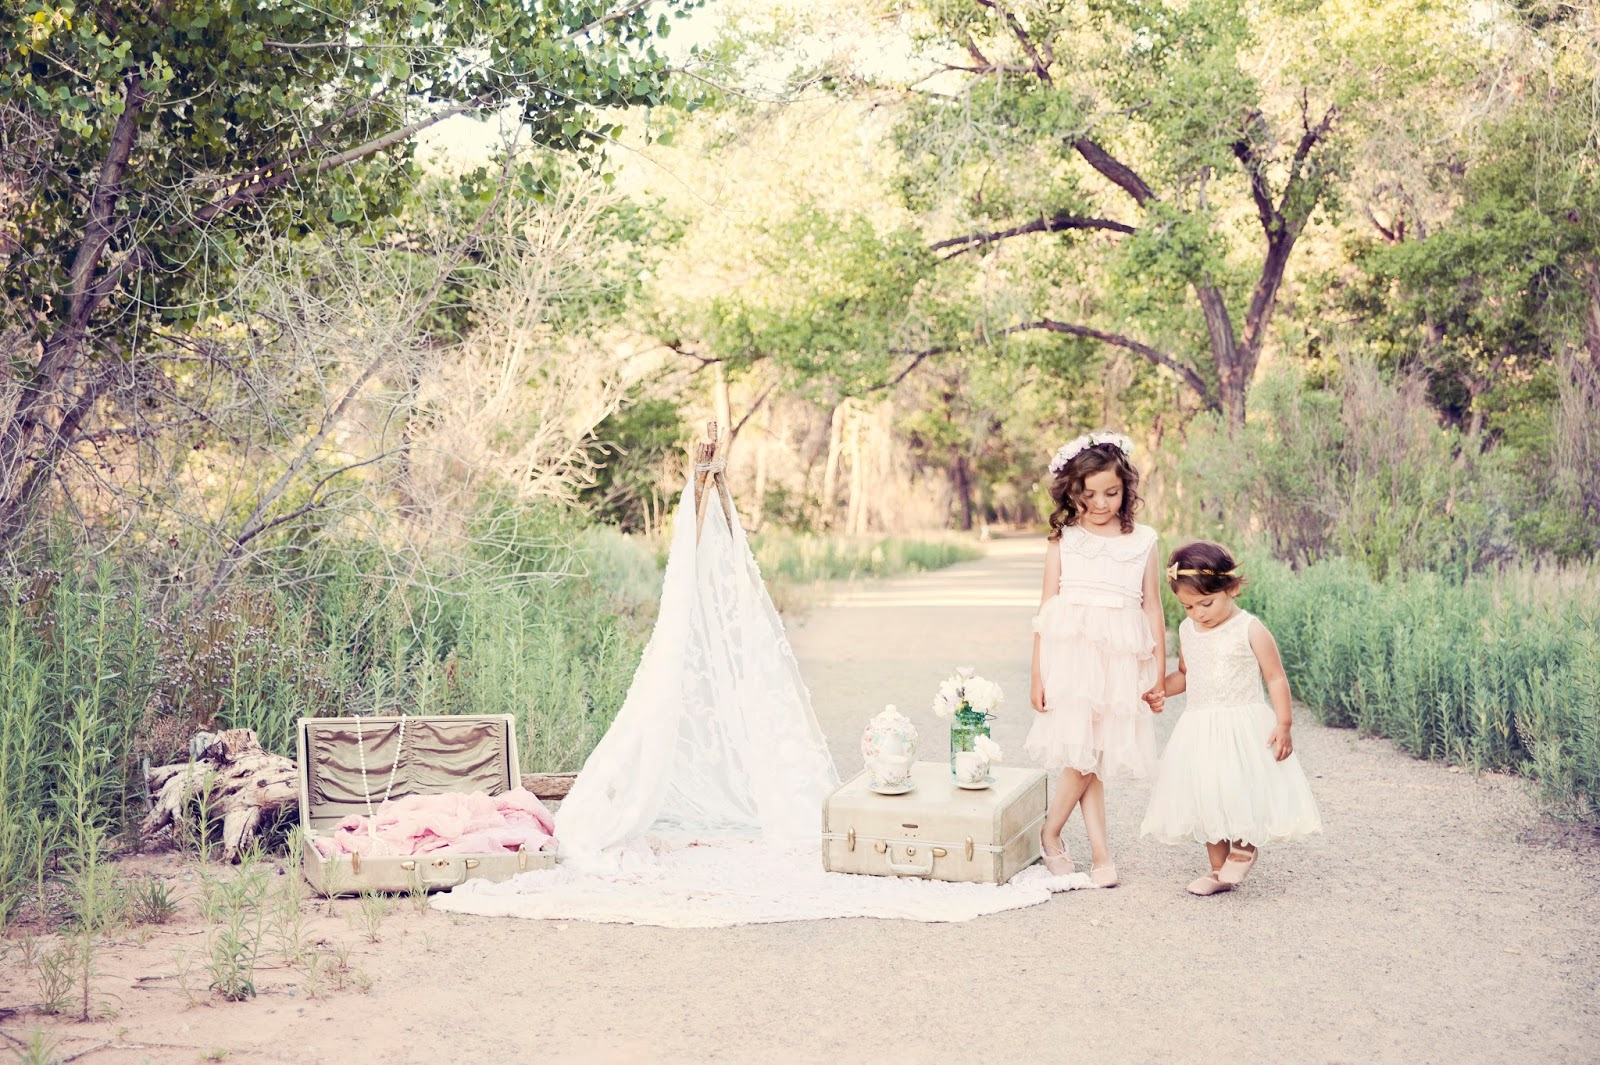 Children Photography Albuquerque, Children Photographer in Albuquerque, Family Photographer Albuquerque, Whimsical Photoshoot, Tea Party Photoshoot, Vintage photoshoot, Little girl photoshoot, kid photographer in albuqueruqe, kid photographer in new mexico